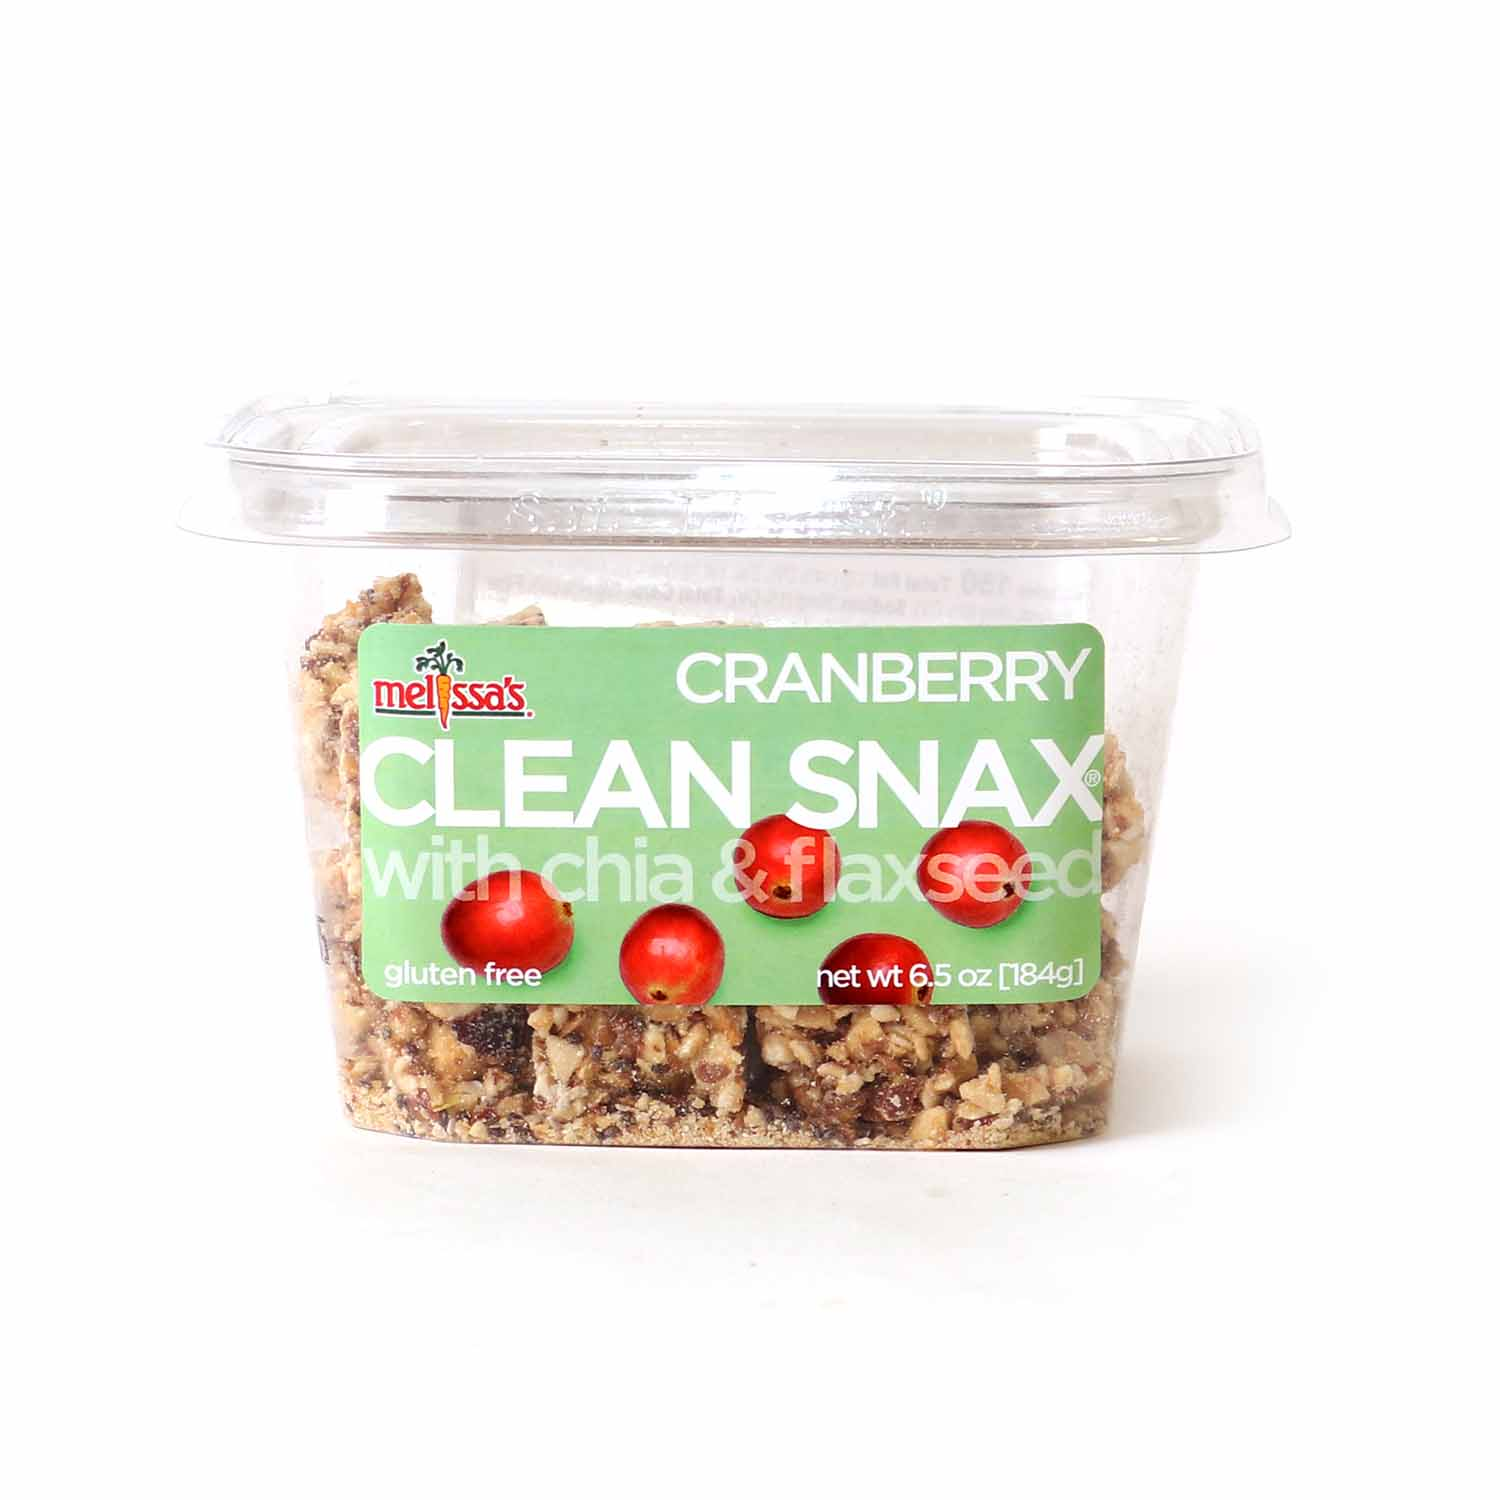 Clean Snax - Cranberry